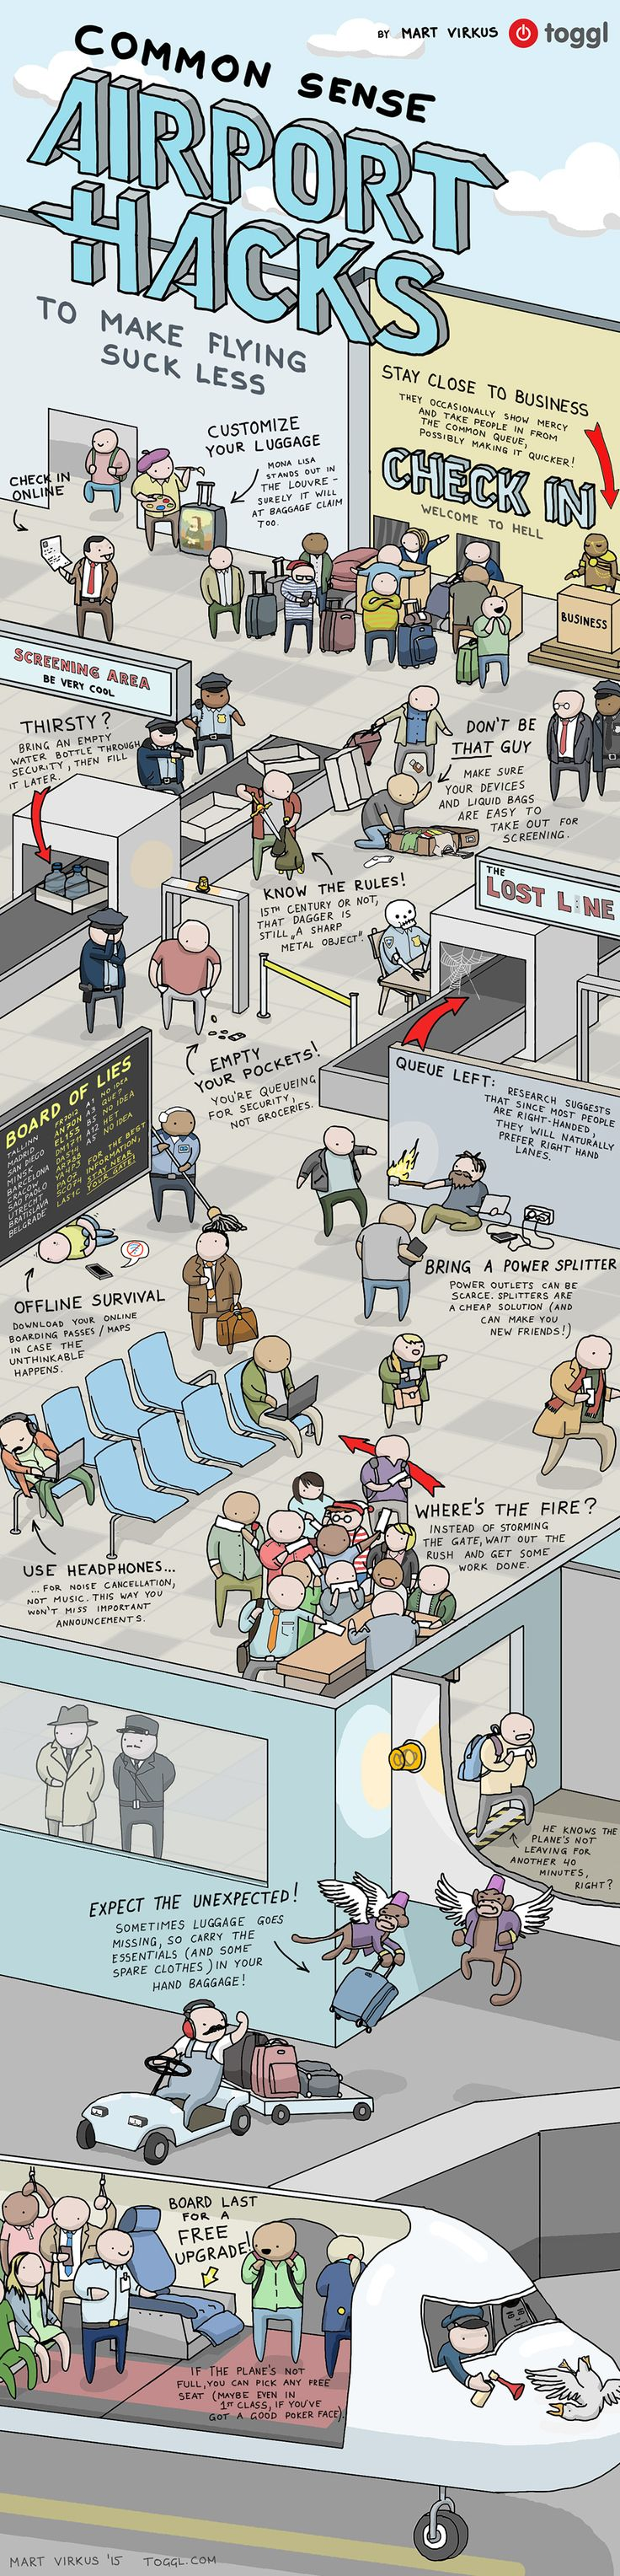 Easy airport hacks to make flying suck less